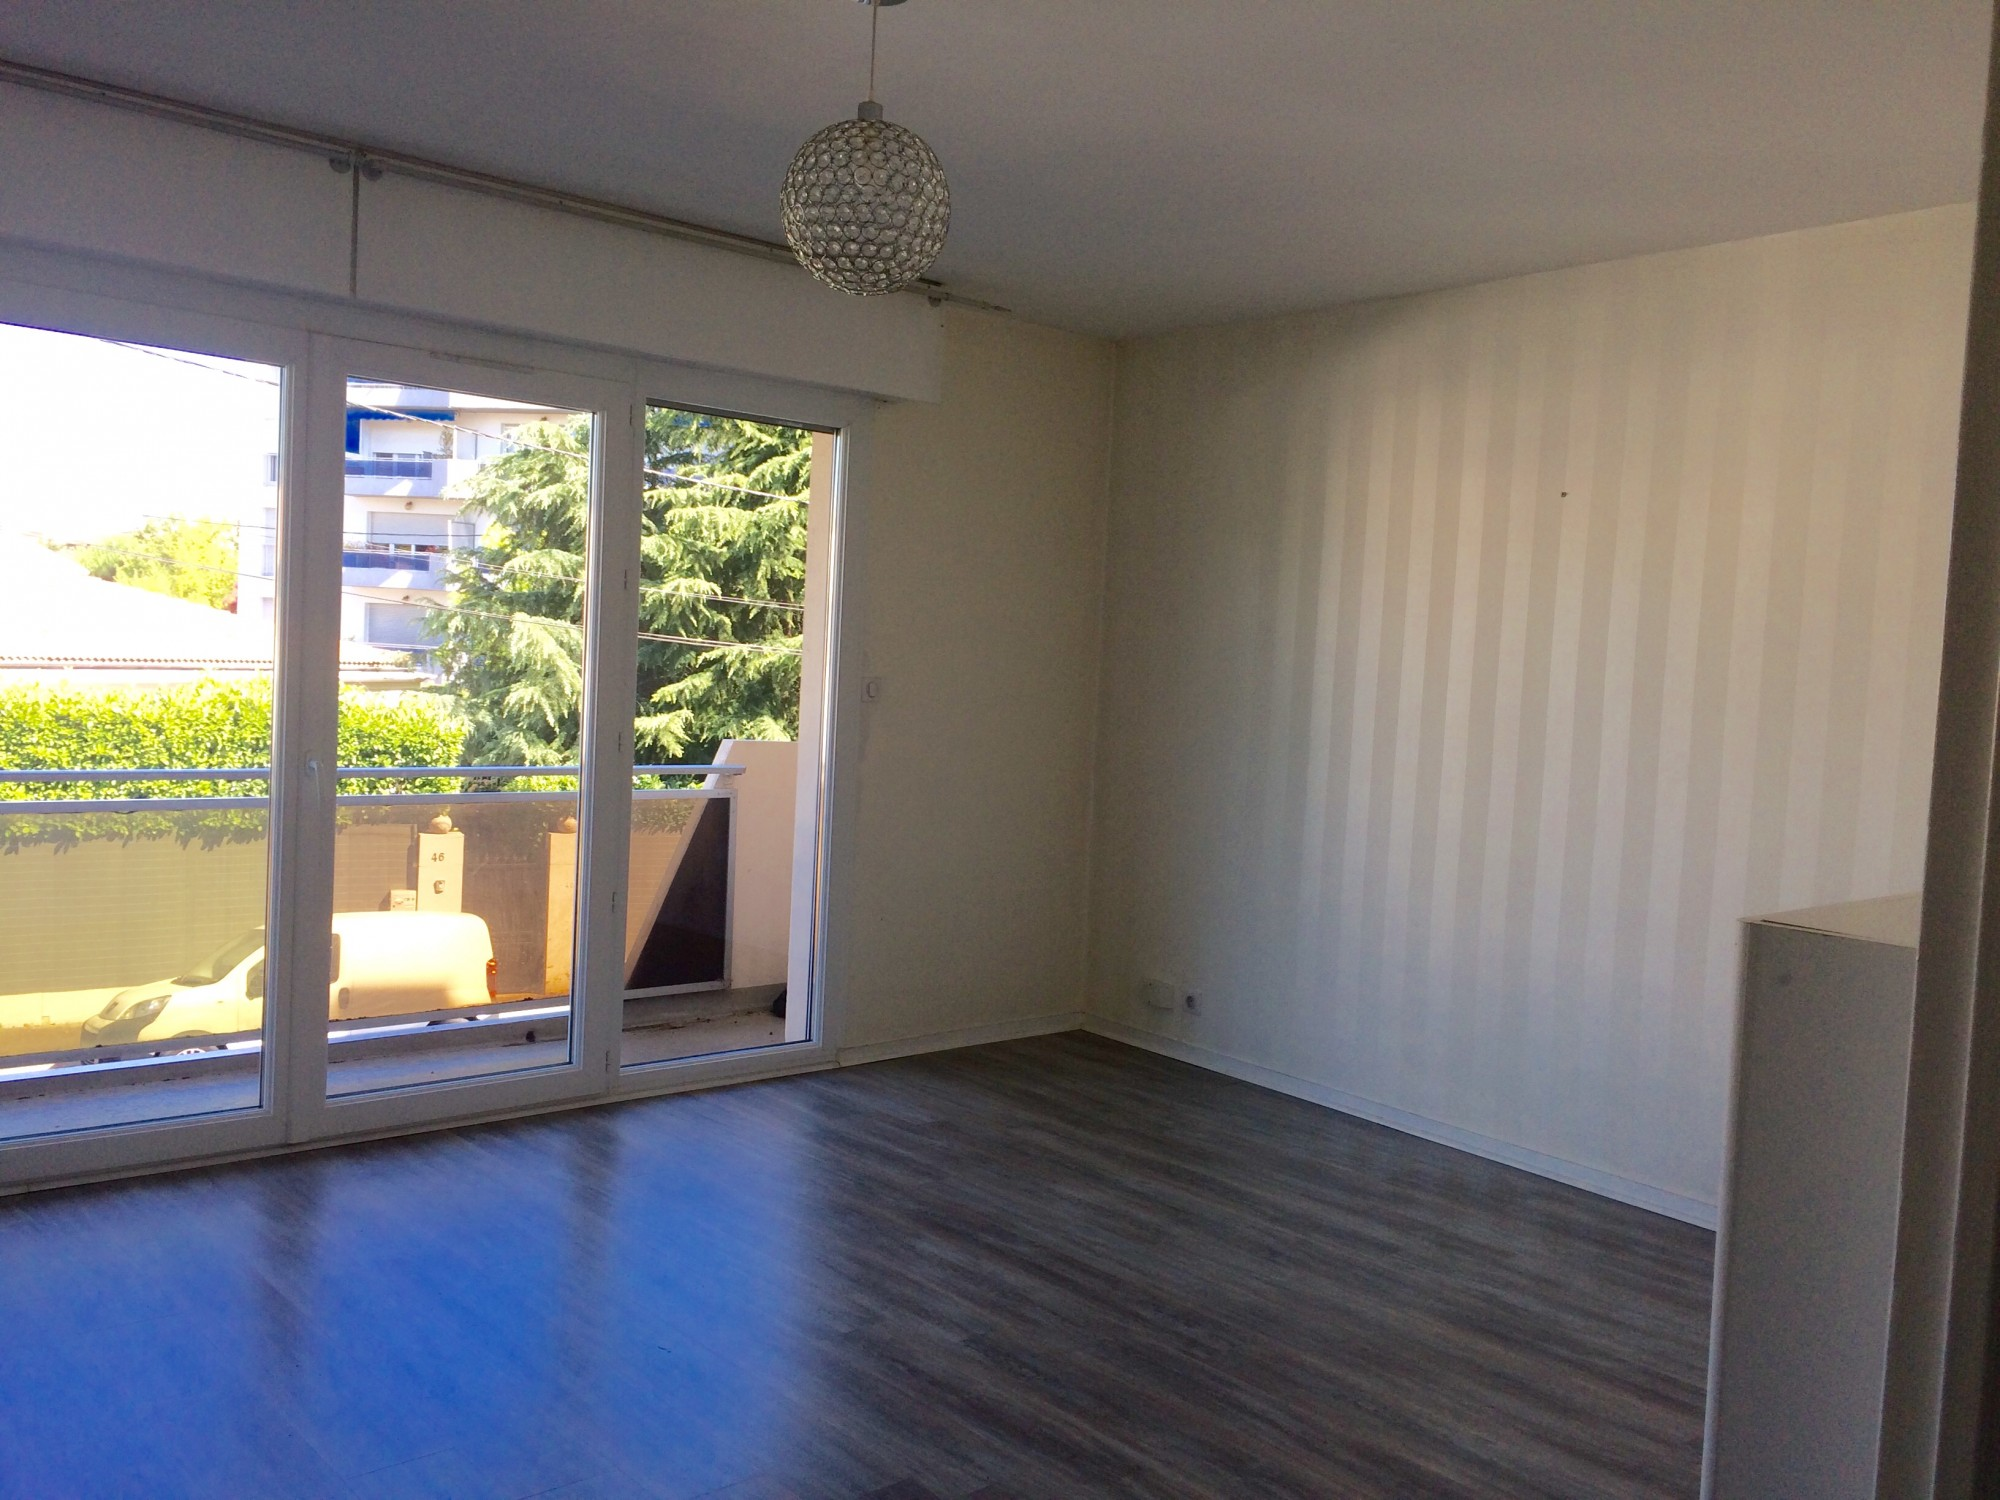 Location appartement t2 t2 f2 bordeaux caud ran bru for Location appartement cub bordeaux